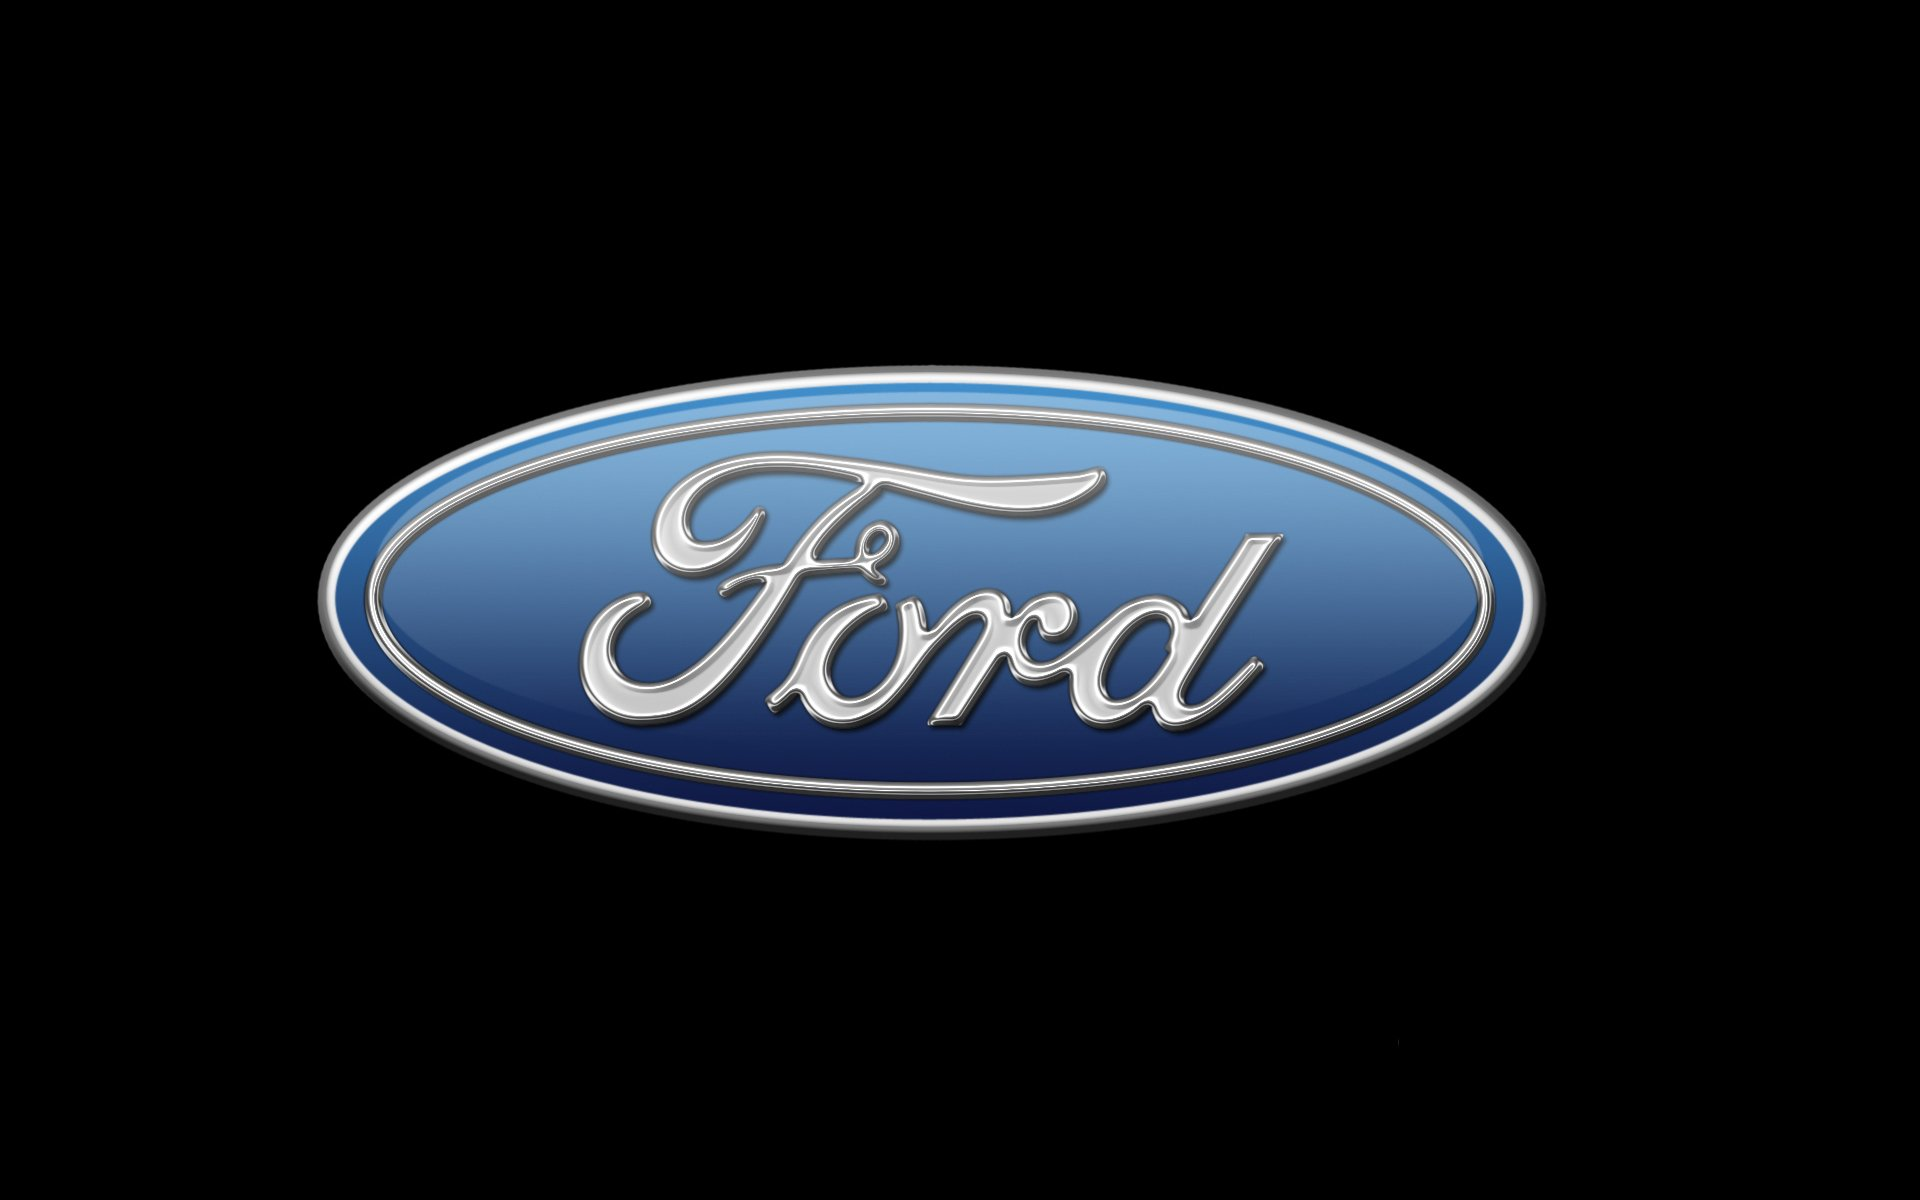 Ford Emblem Wallpaper - WallpaperSafari